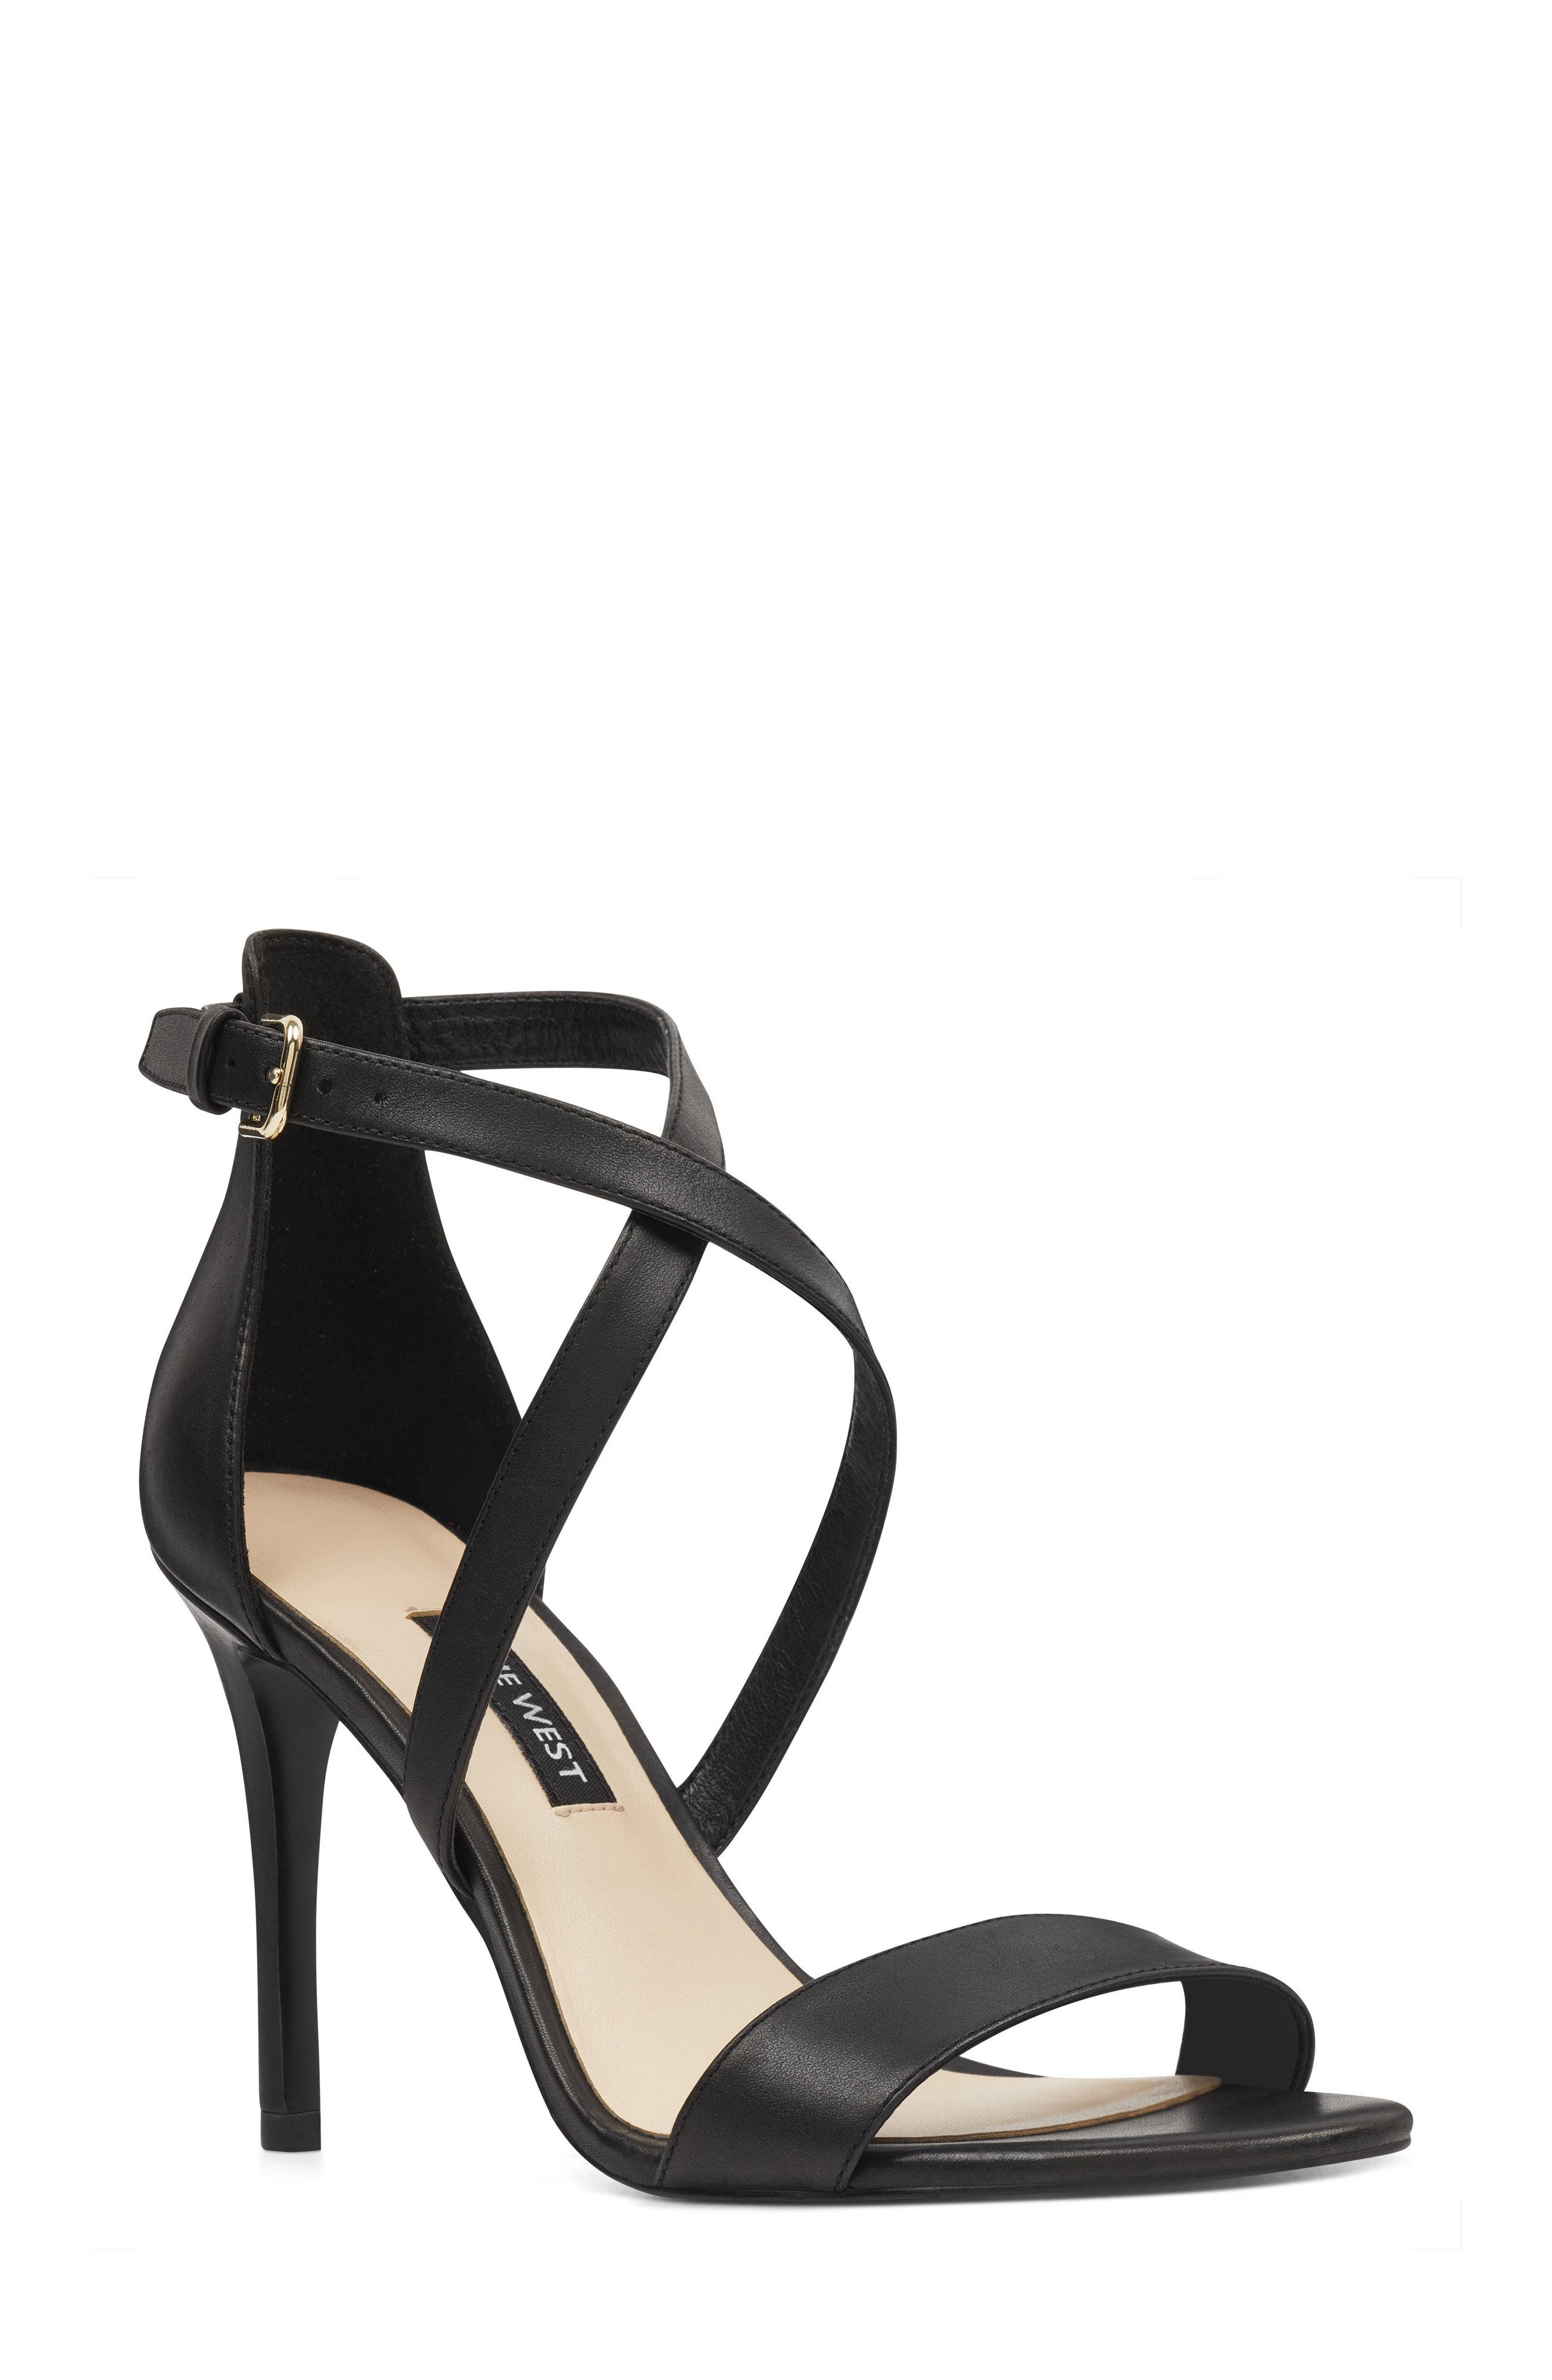 Mydebut Strappy Sandal,                         Main,                         color, BLACK LEATHER